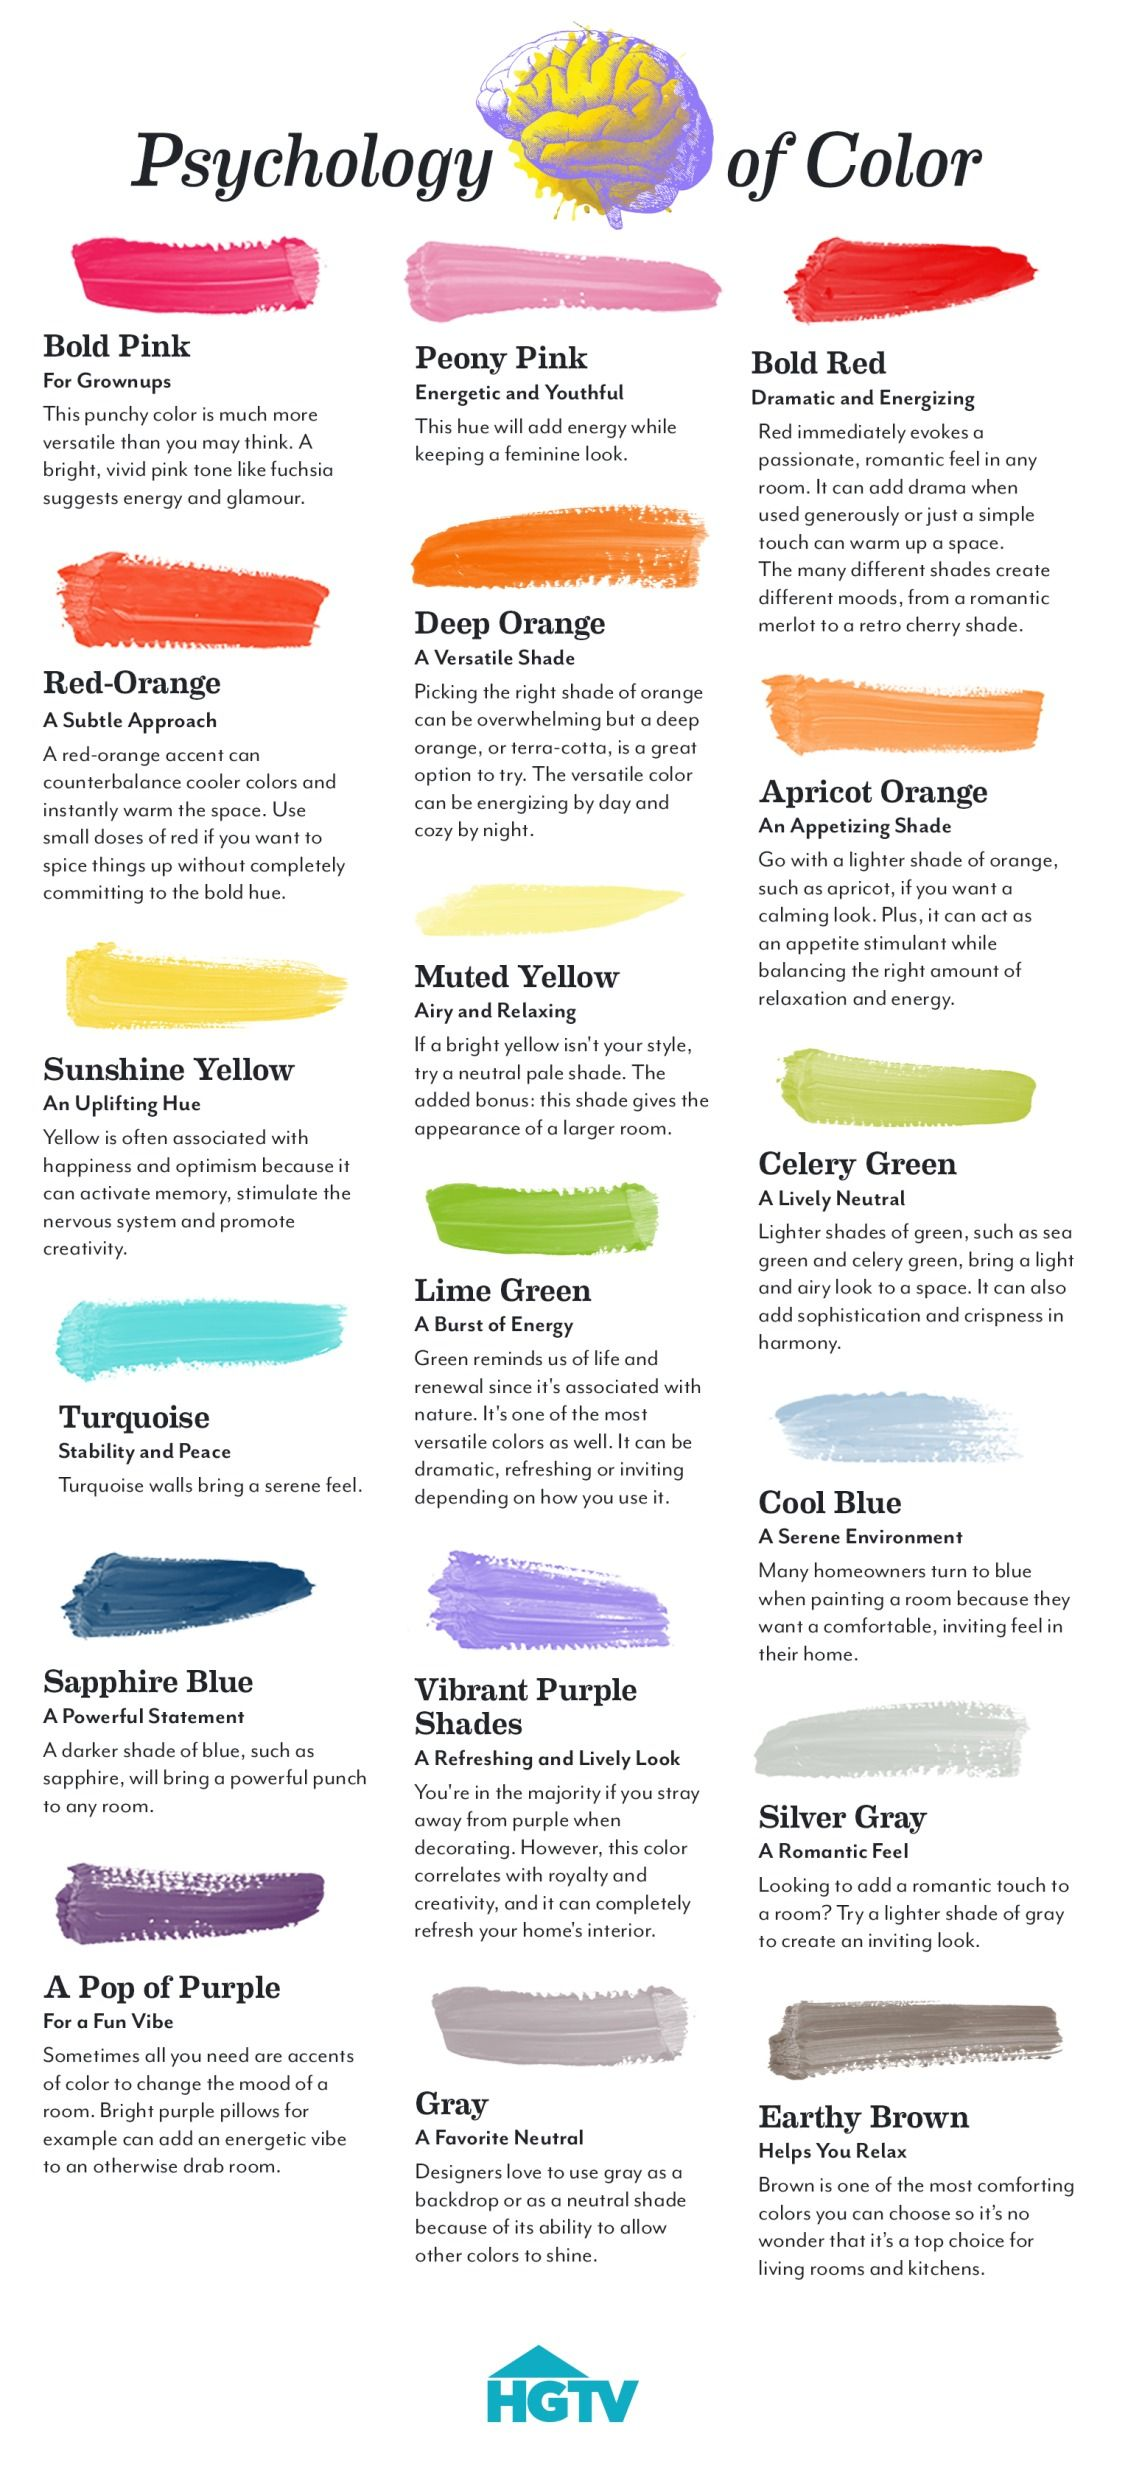 0441b99c9 Psychology of Color: Find the perfect shade that fits your aesthetic with  this helpful guide